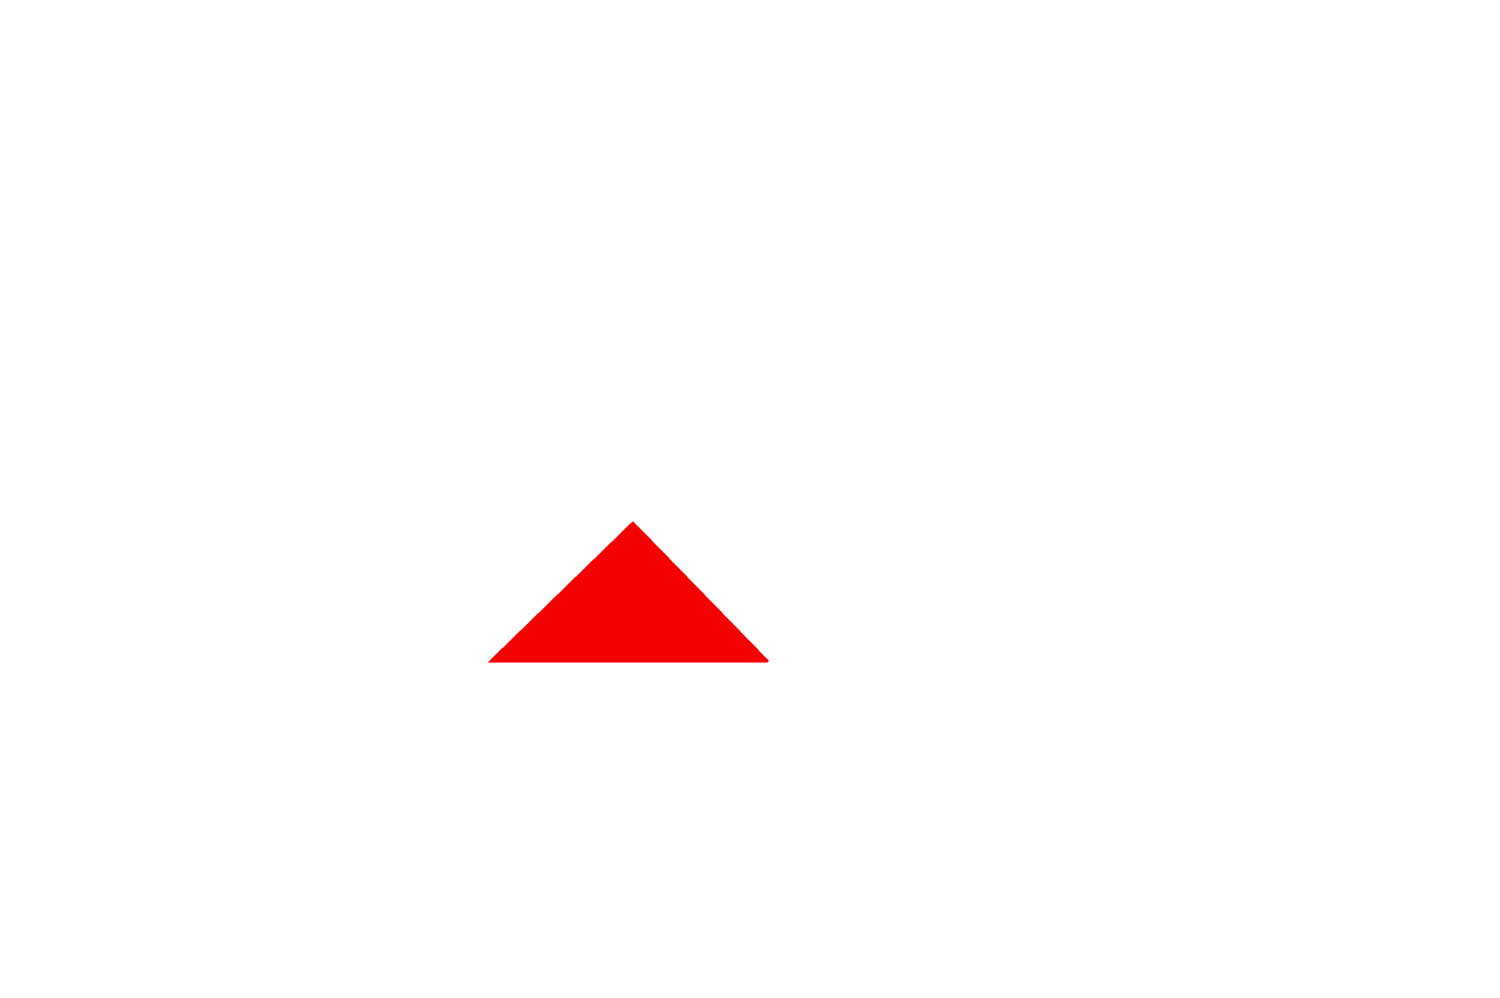 Bedrock Church Franklin Co.